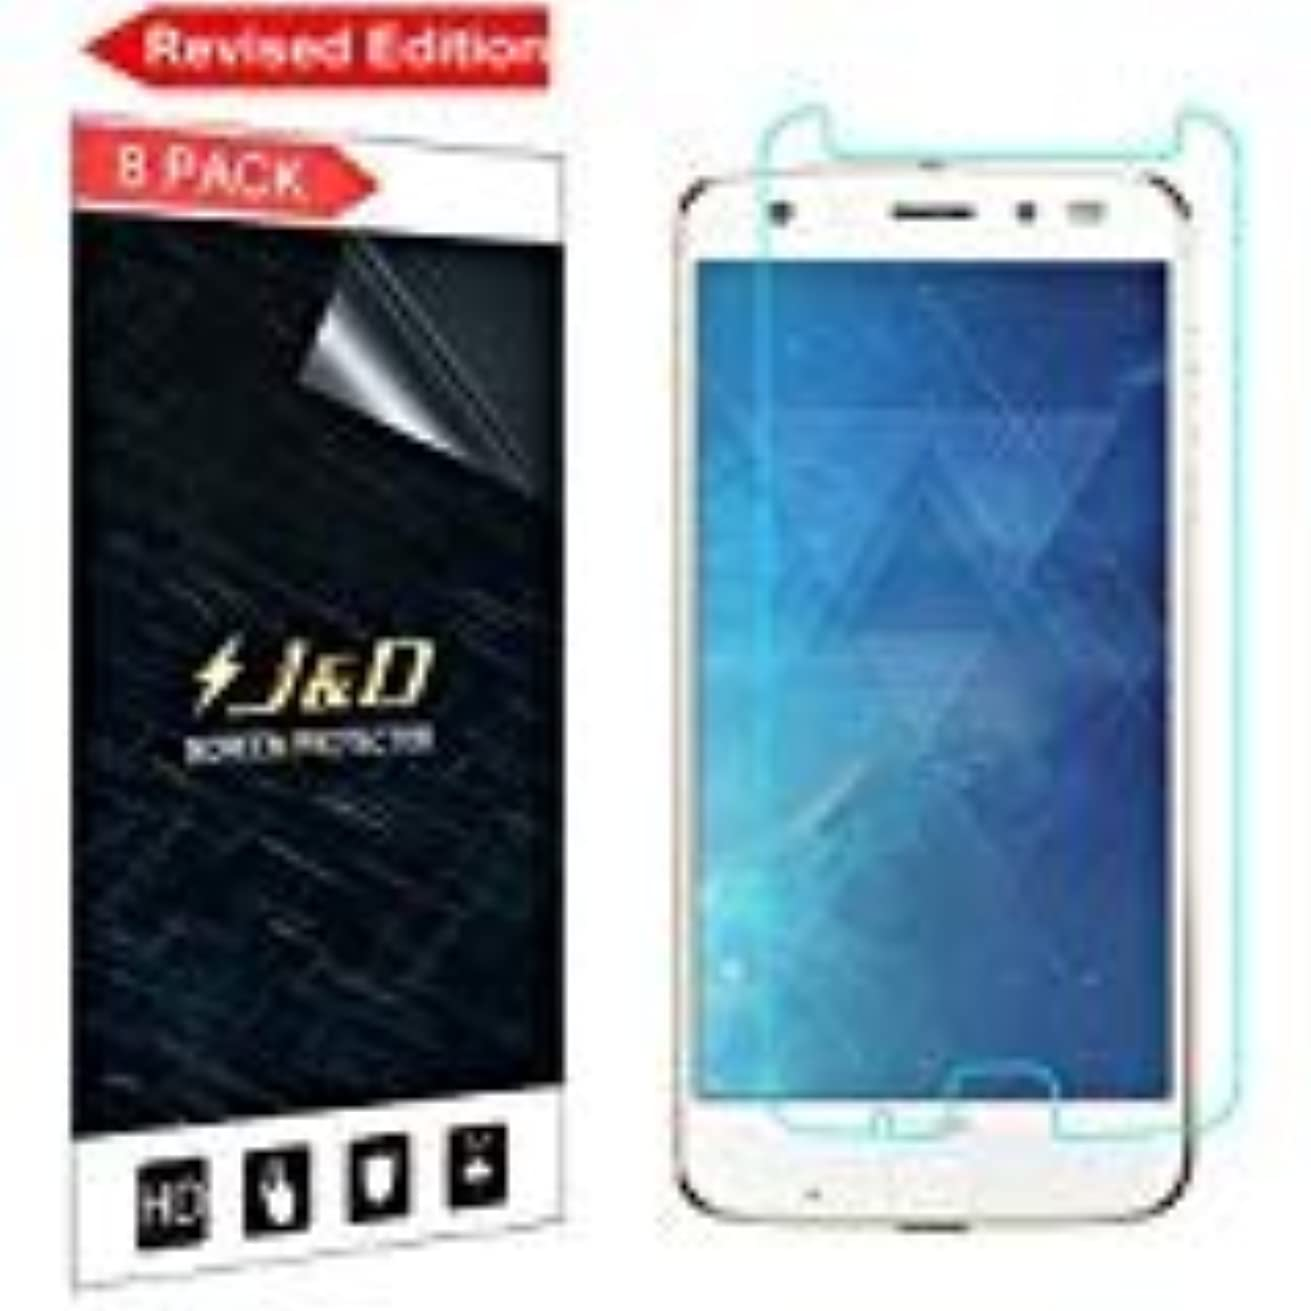 [Revised Edition] J&D Compatible for 8-Pack Moto Z2 Force/Moto Z2 Force Edition Screen Protector, Premium Clear Film Shield Screen Protector for Motorola Moto Z2 Force Crystal Clear Screen Protector